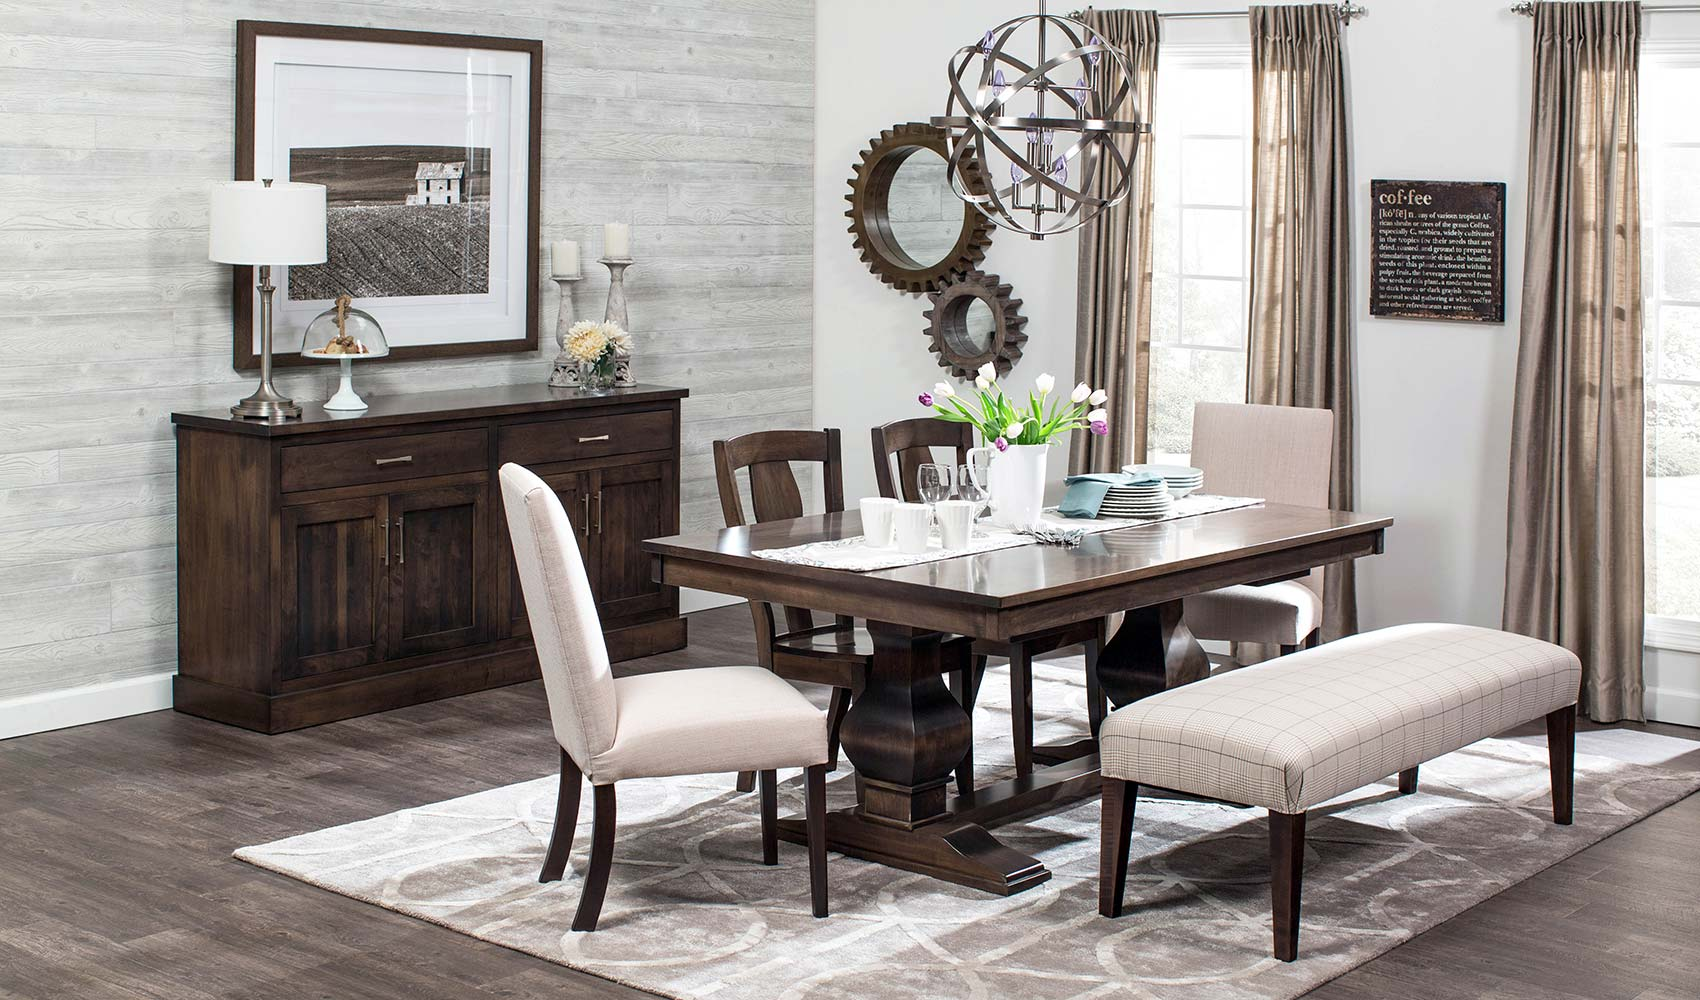 We carry tables, chairs, sideboards and more for your Dining Room needs.